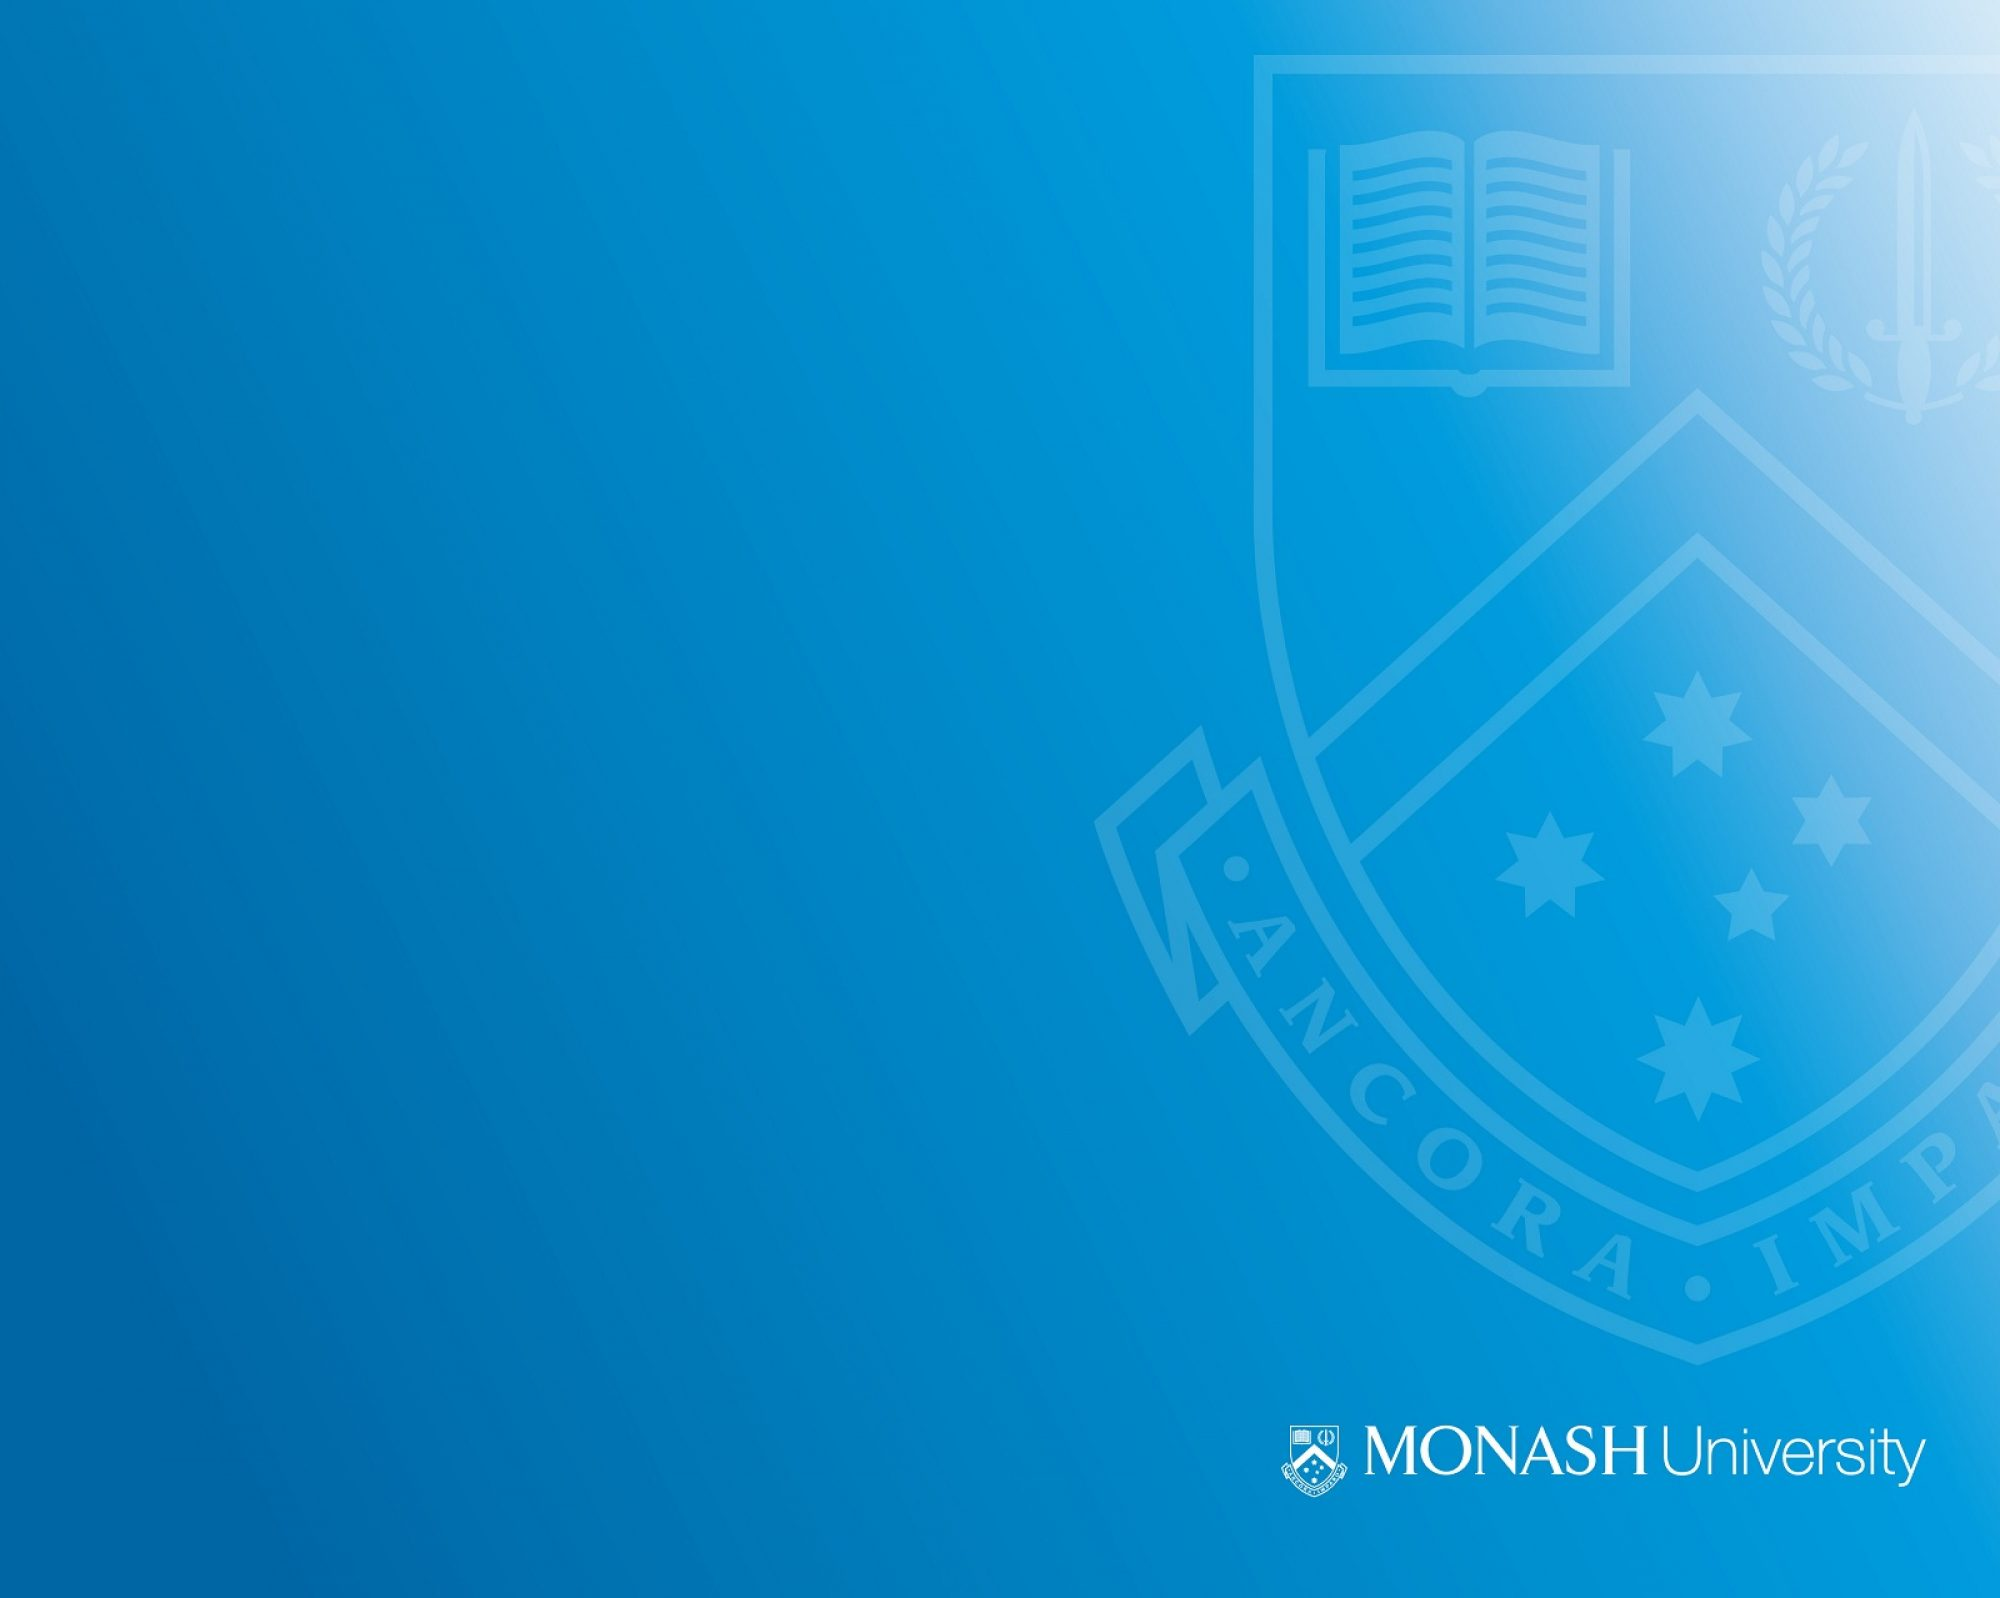 Monash University: BASE Decision Study